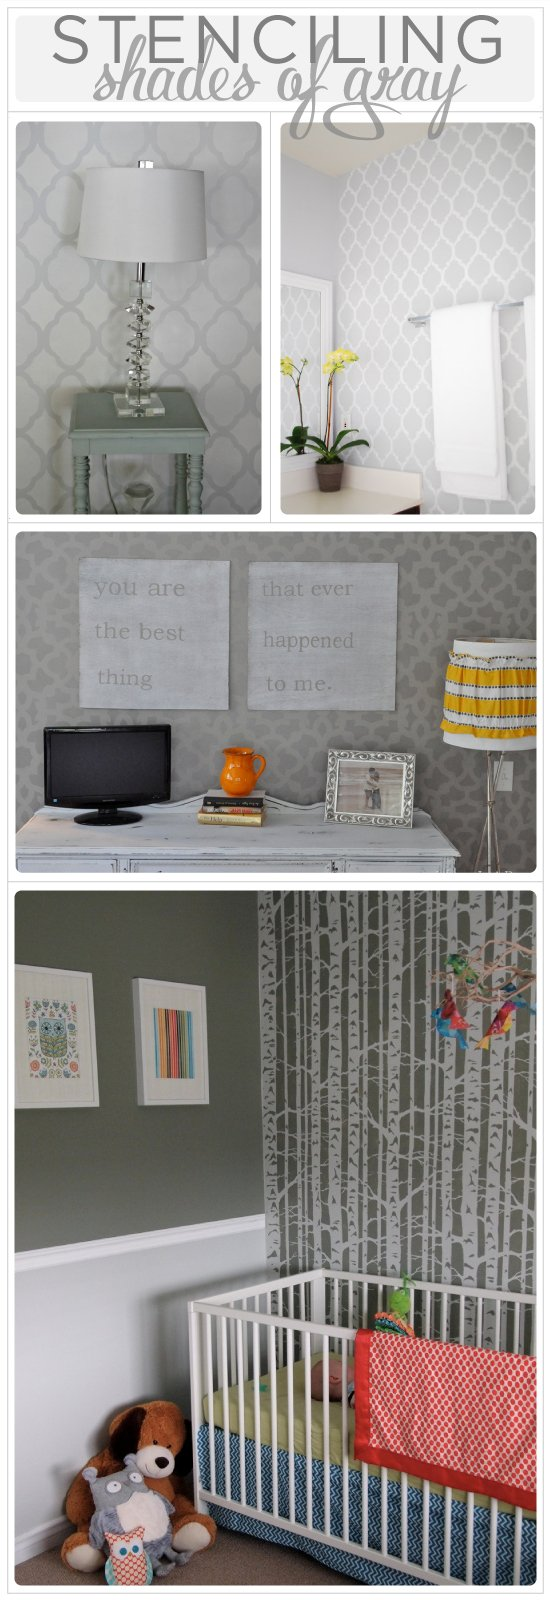 Don't be afraid of using gray when painting with Cutting Edge Stencils!